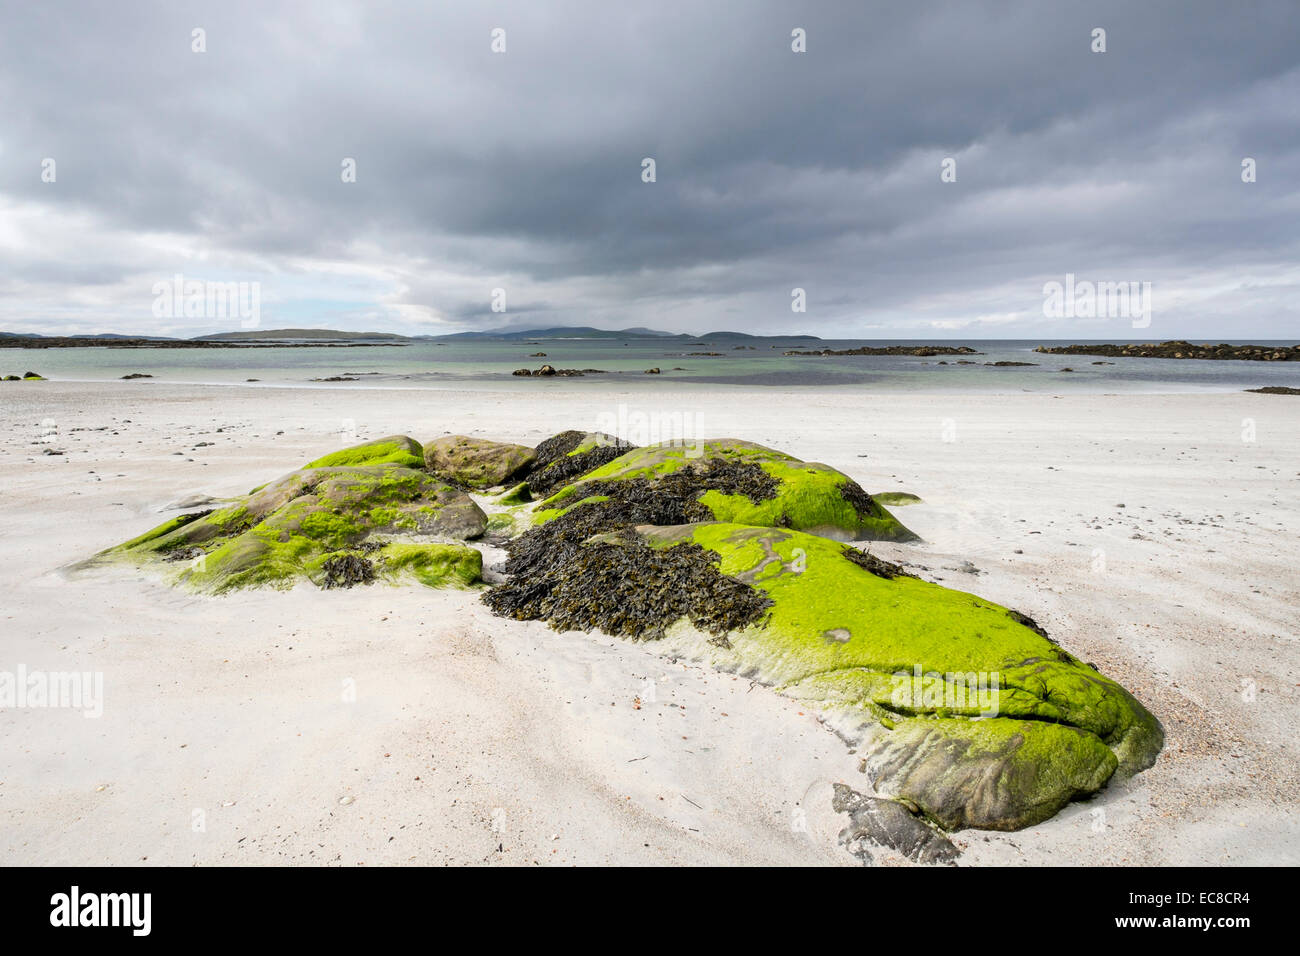 Seaweed covered rocks on empty sandy beach at Pol a Chara, South Uist, Outer Hebrides, Western Isles, Scotland, - Stock Image